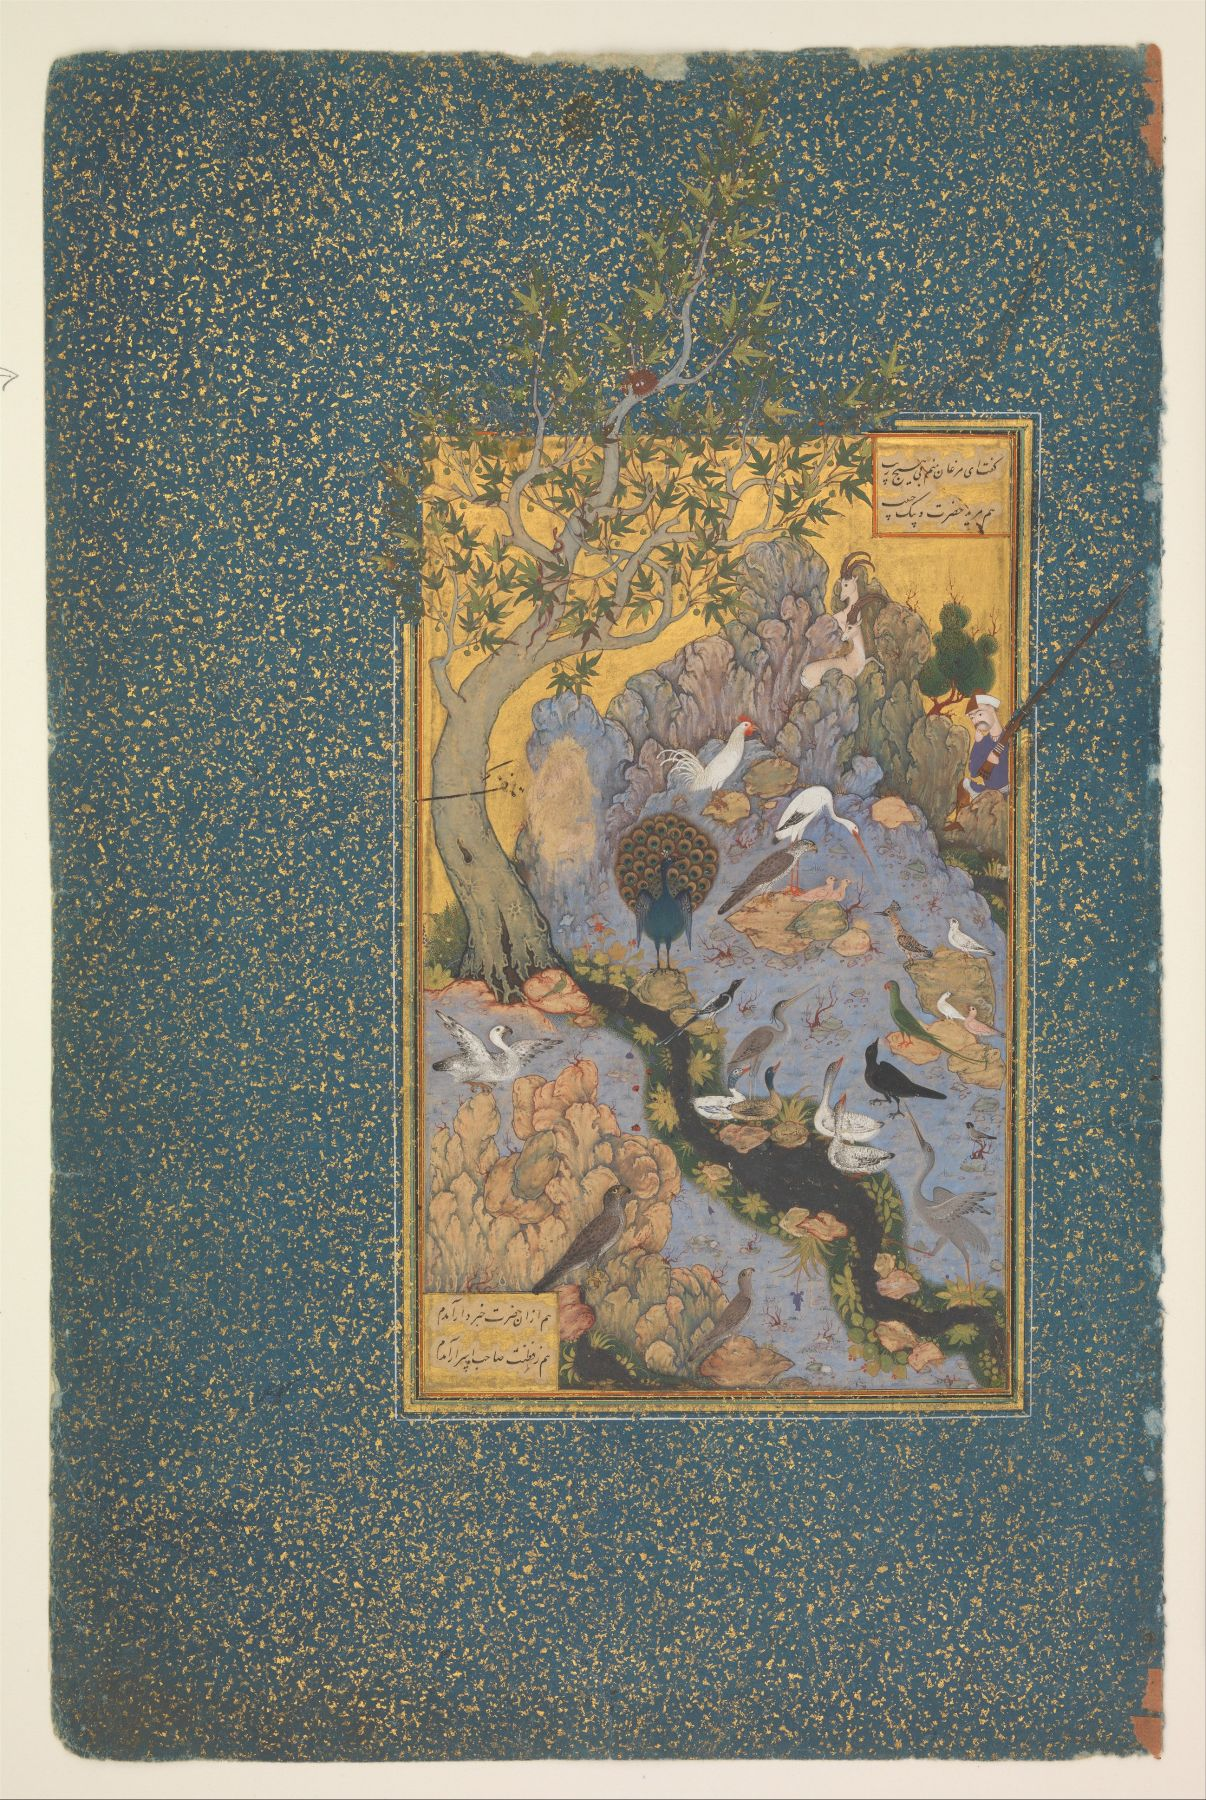 The Concourse of the Birds by Habiballah of Sava, c. 1600, Iran